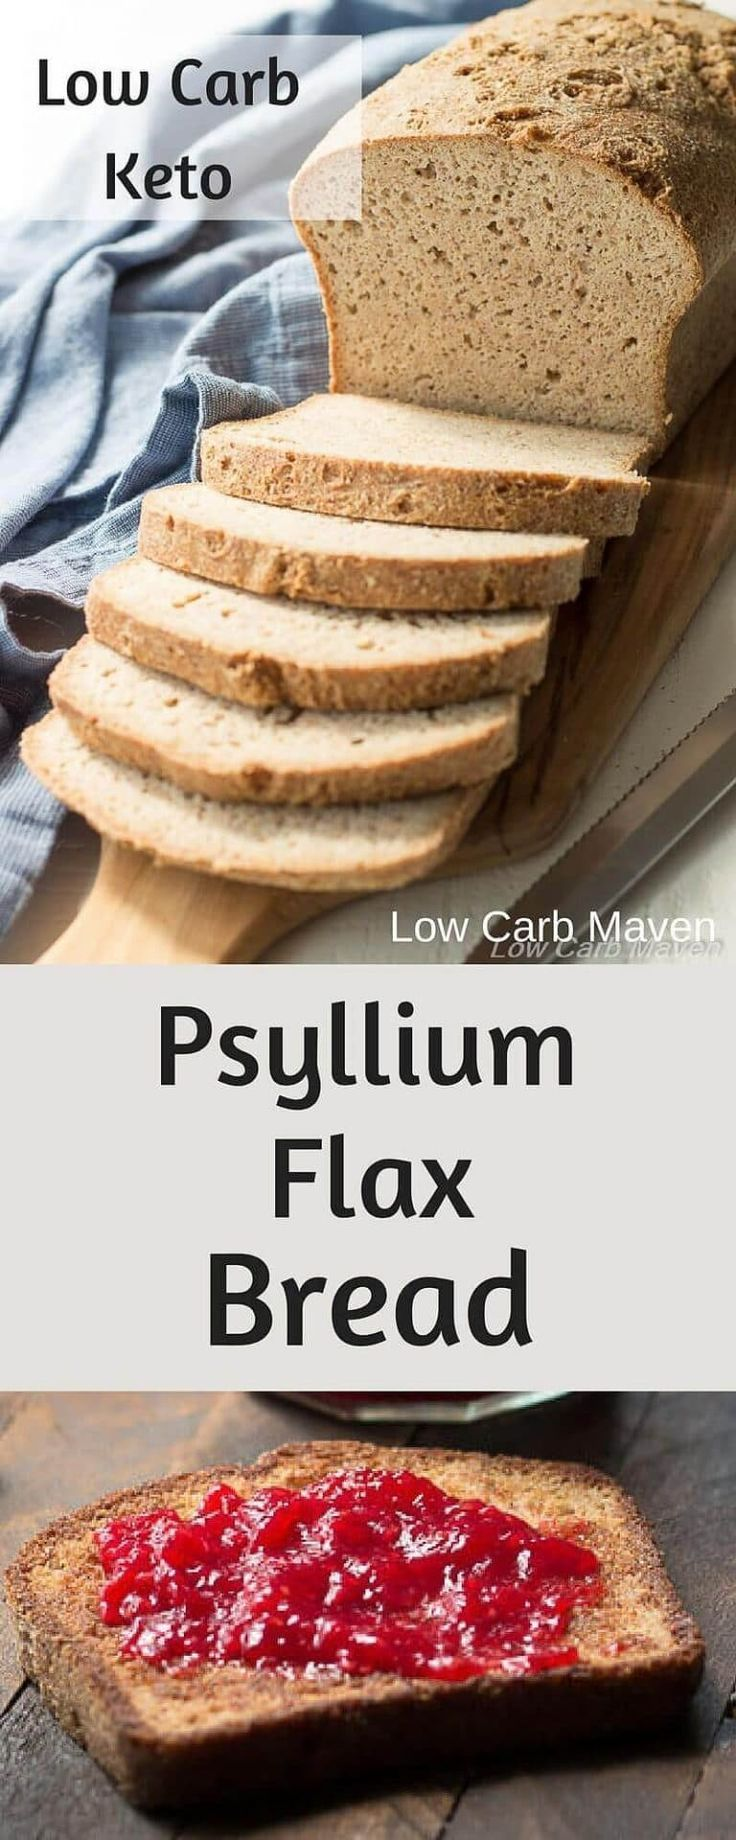 THE BEST LOW CARB KETO PSYLLIUM-FLAX BREAD I HAVE HAD.AMAZING! A LOW CARB BREAD THAT LOOKS LIKE THE REAL THING AND TASTES LIKE HOMEMADE SOURDOUGH BREAD.